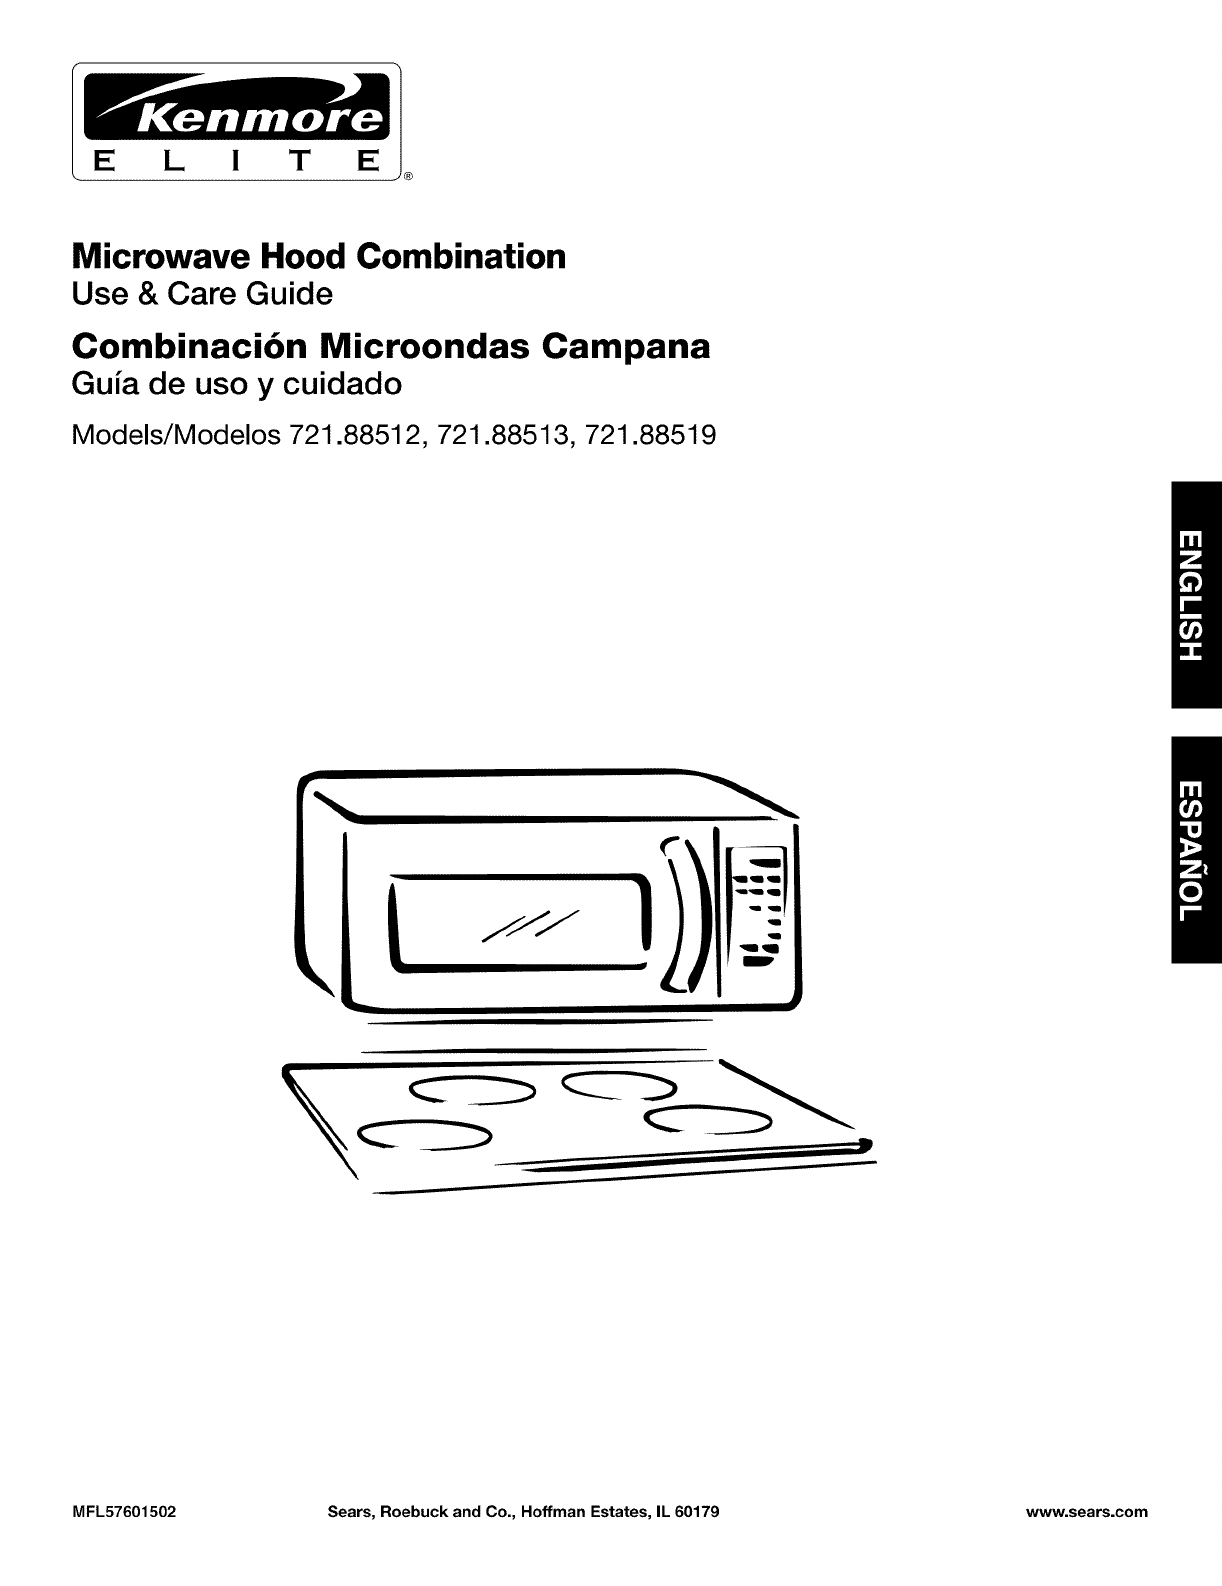 Kenmore Microwave Oven 721.88512 User Guide